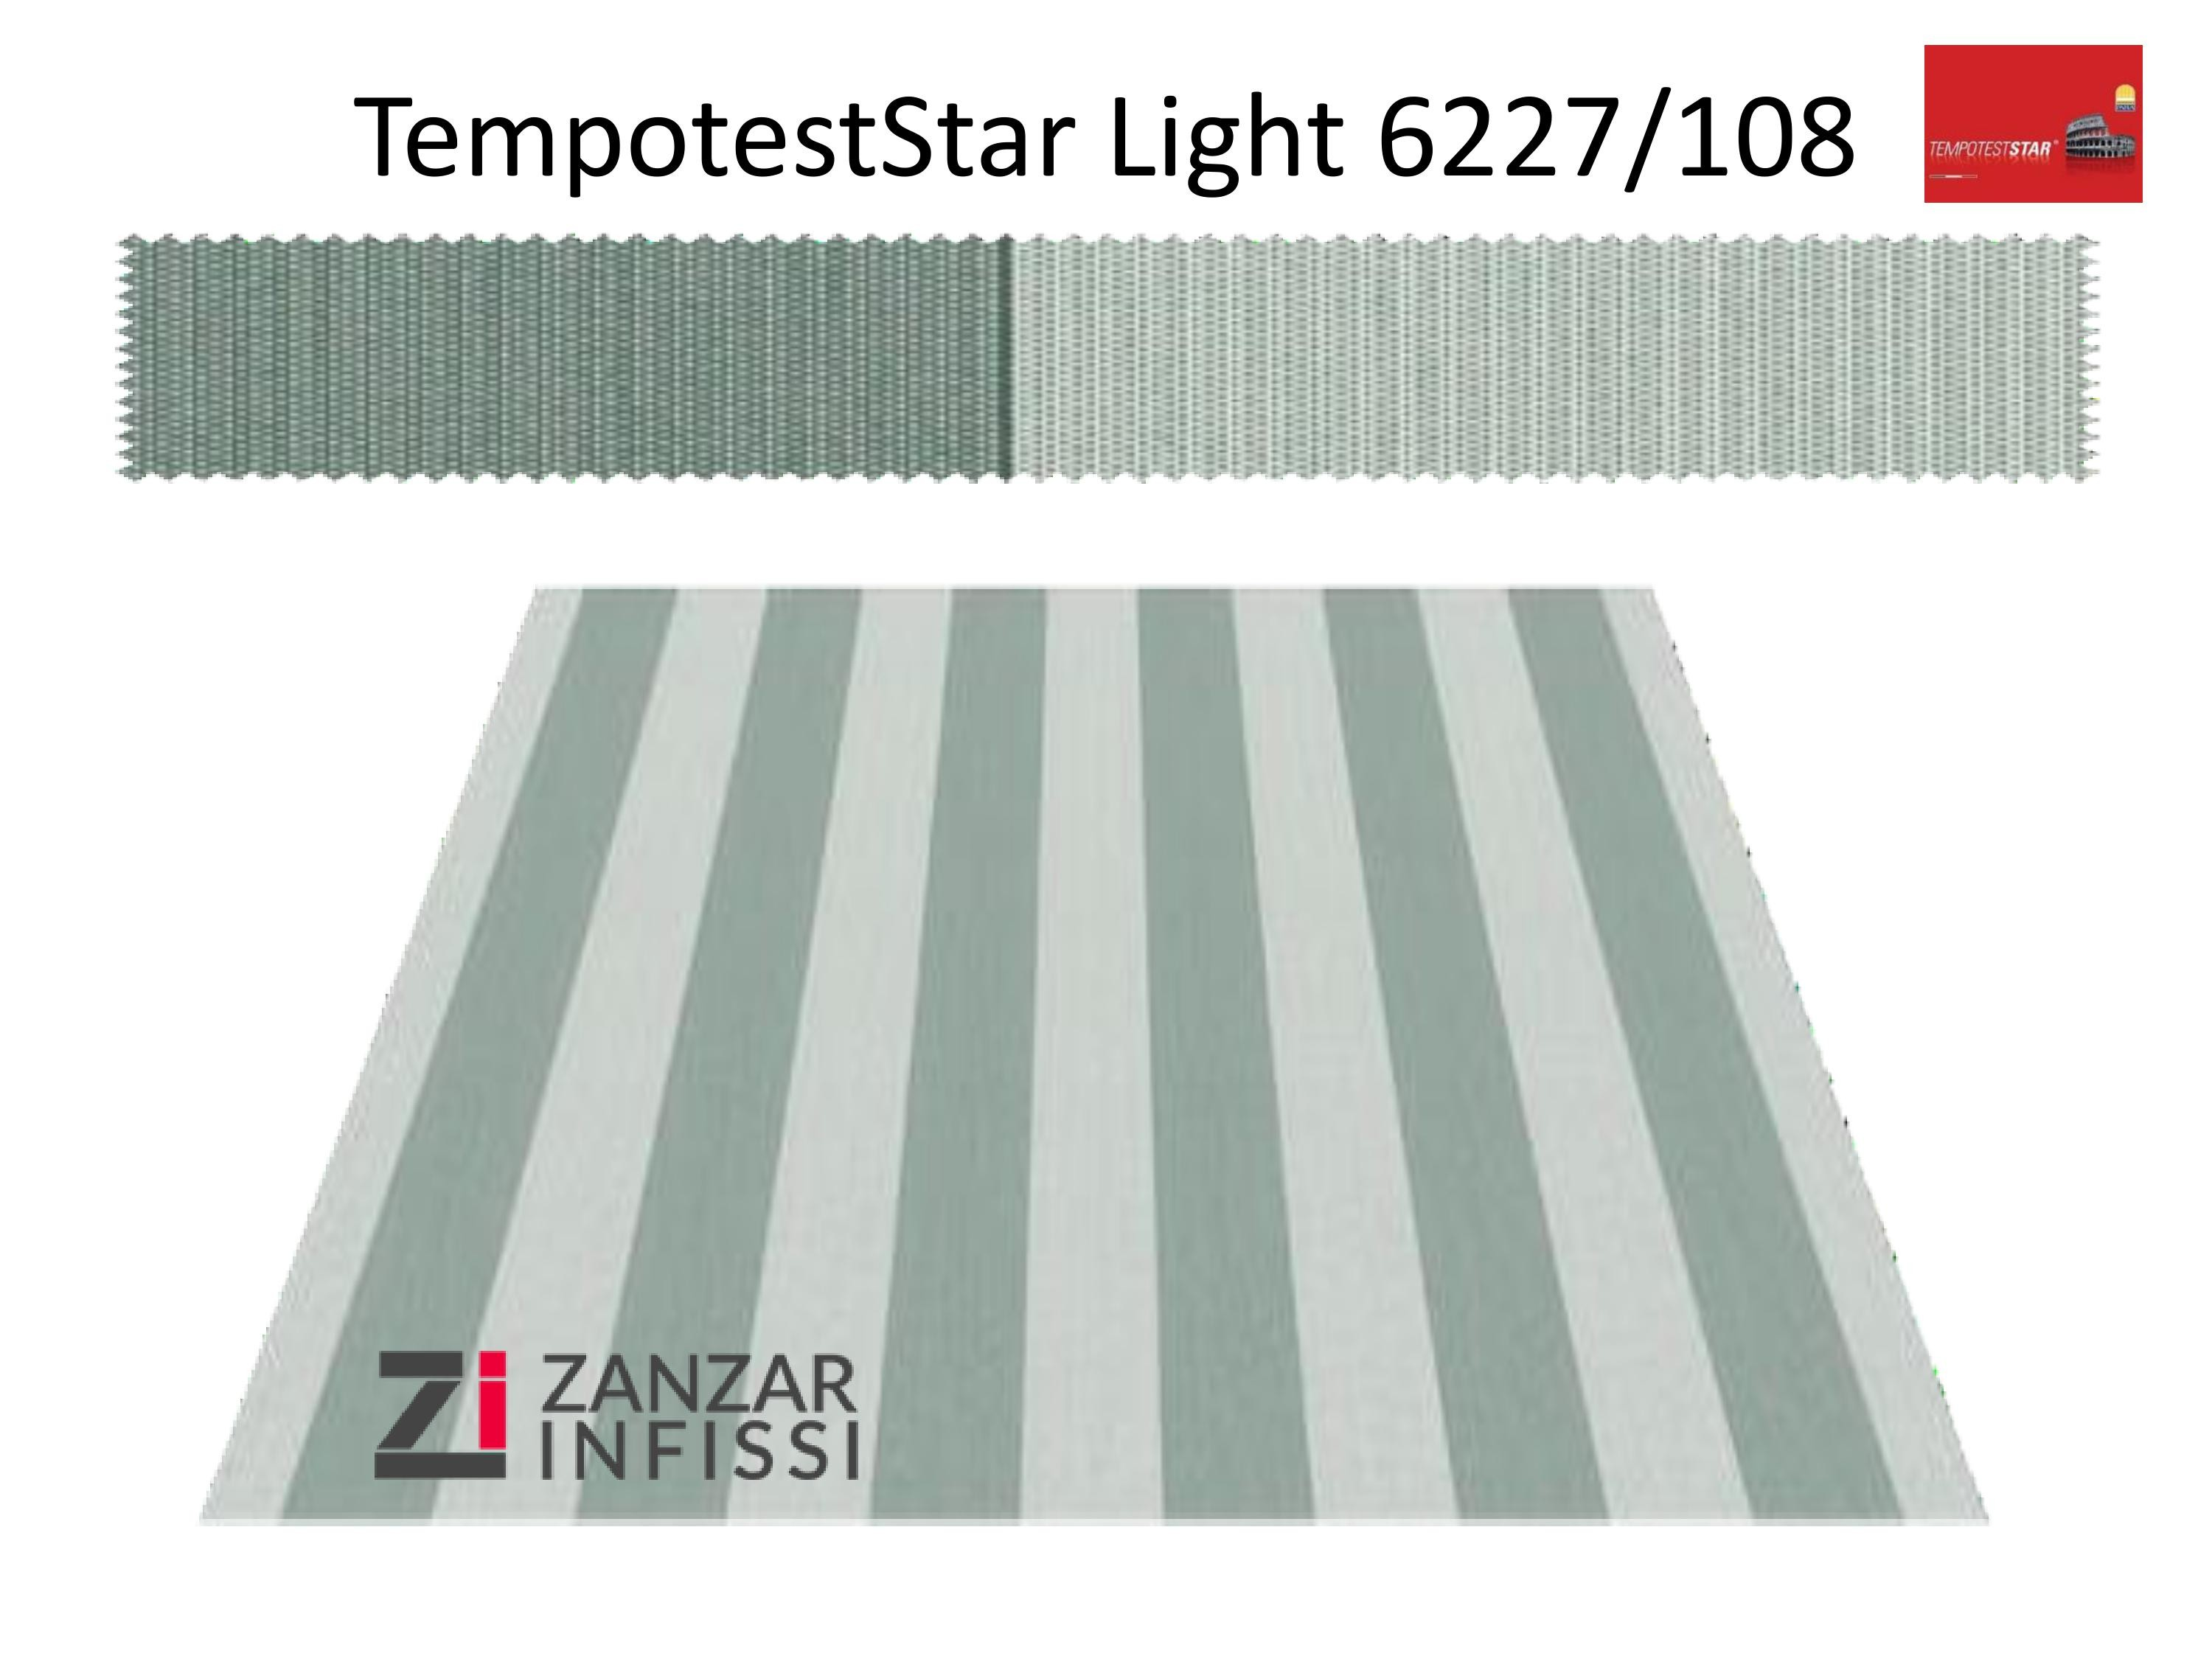 Tempotest star light 6227/108